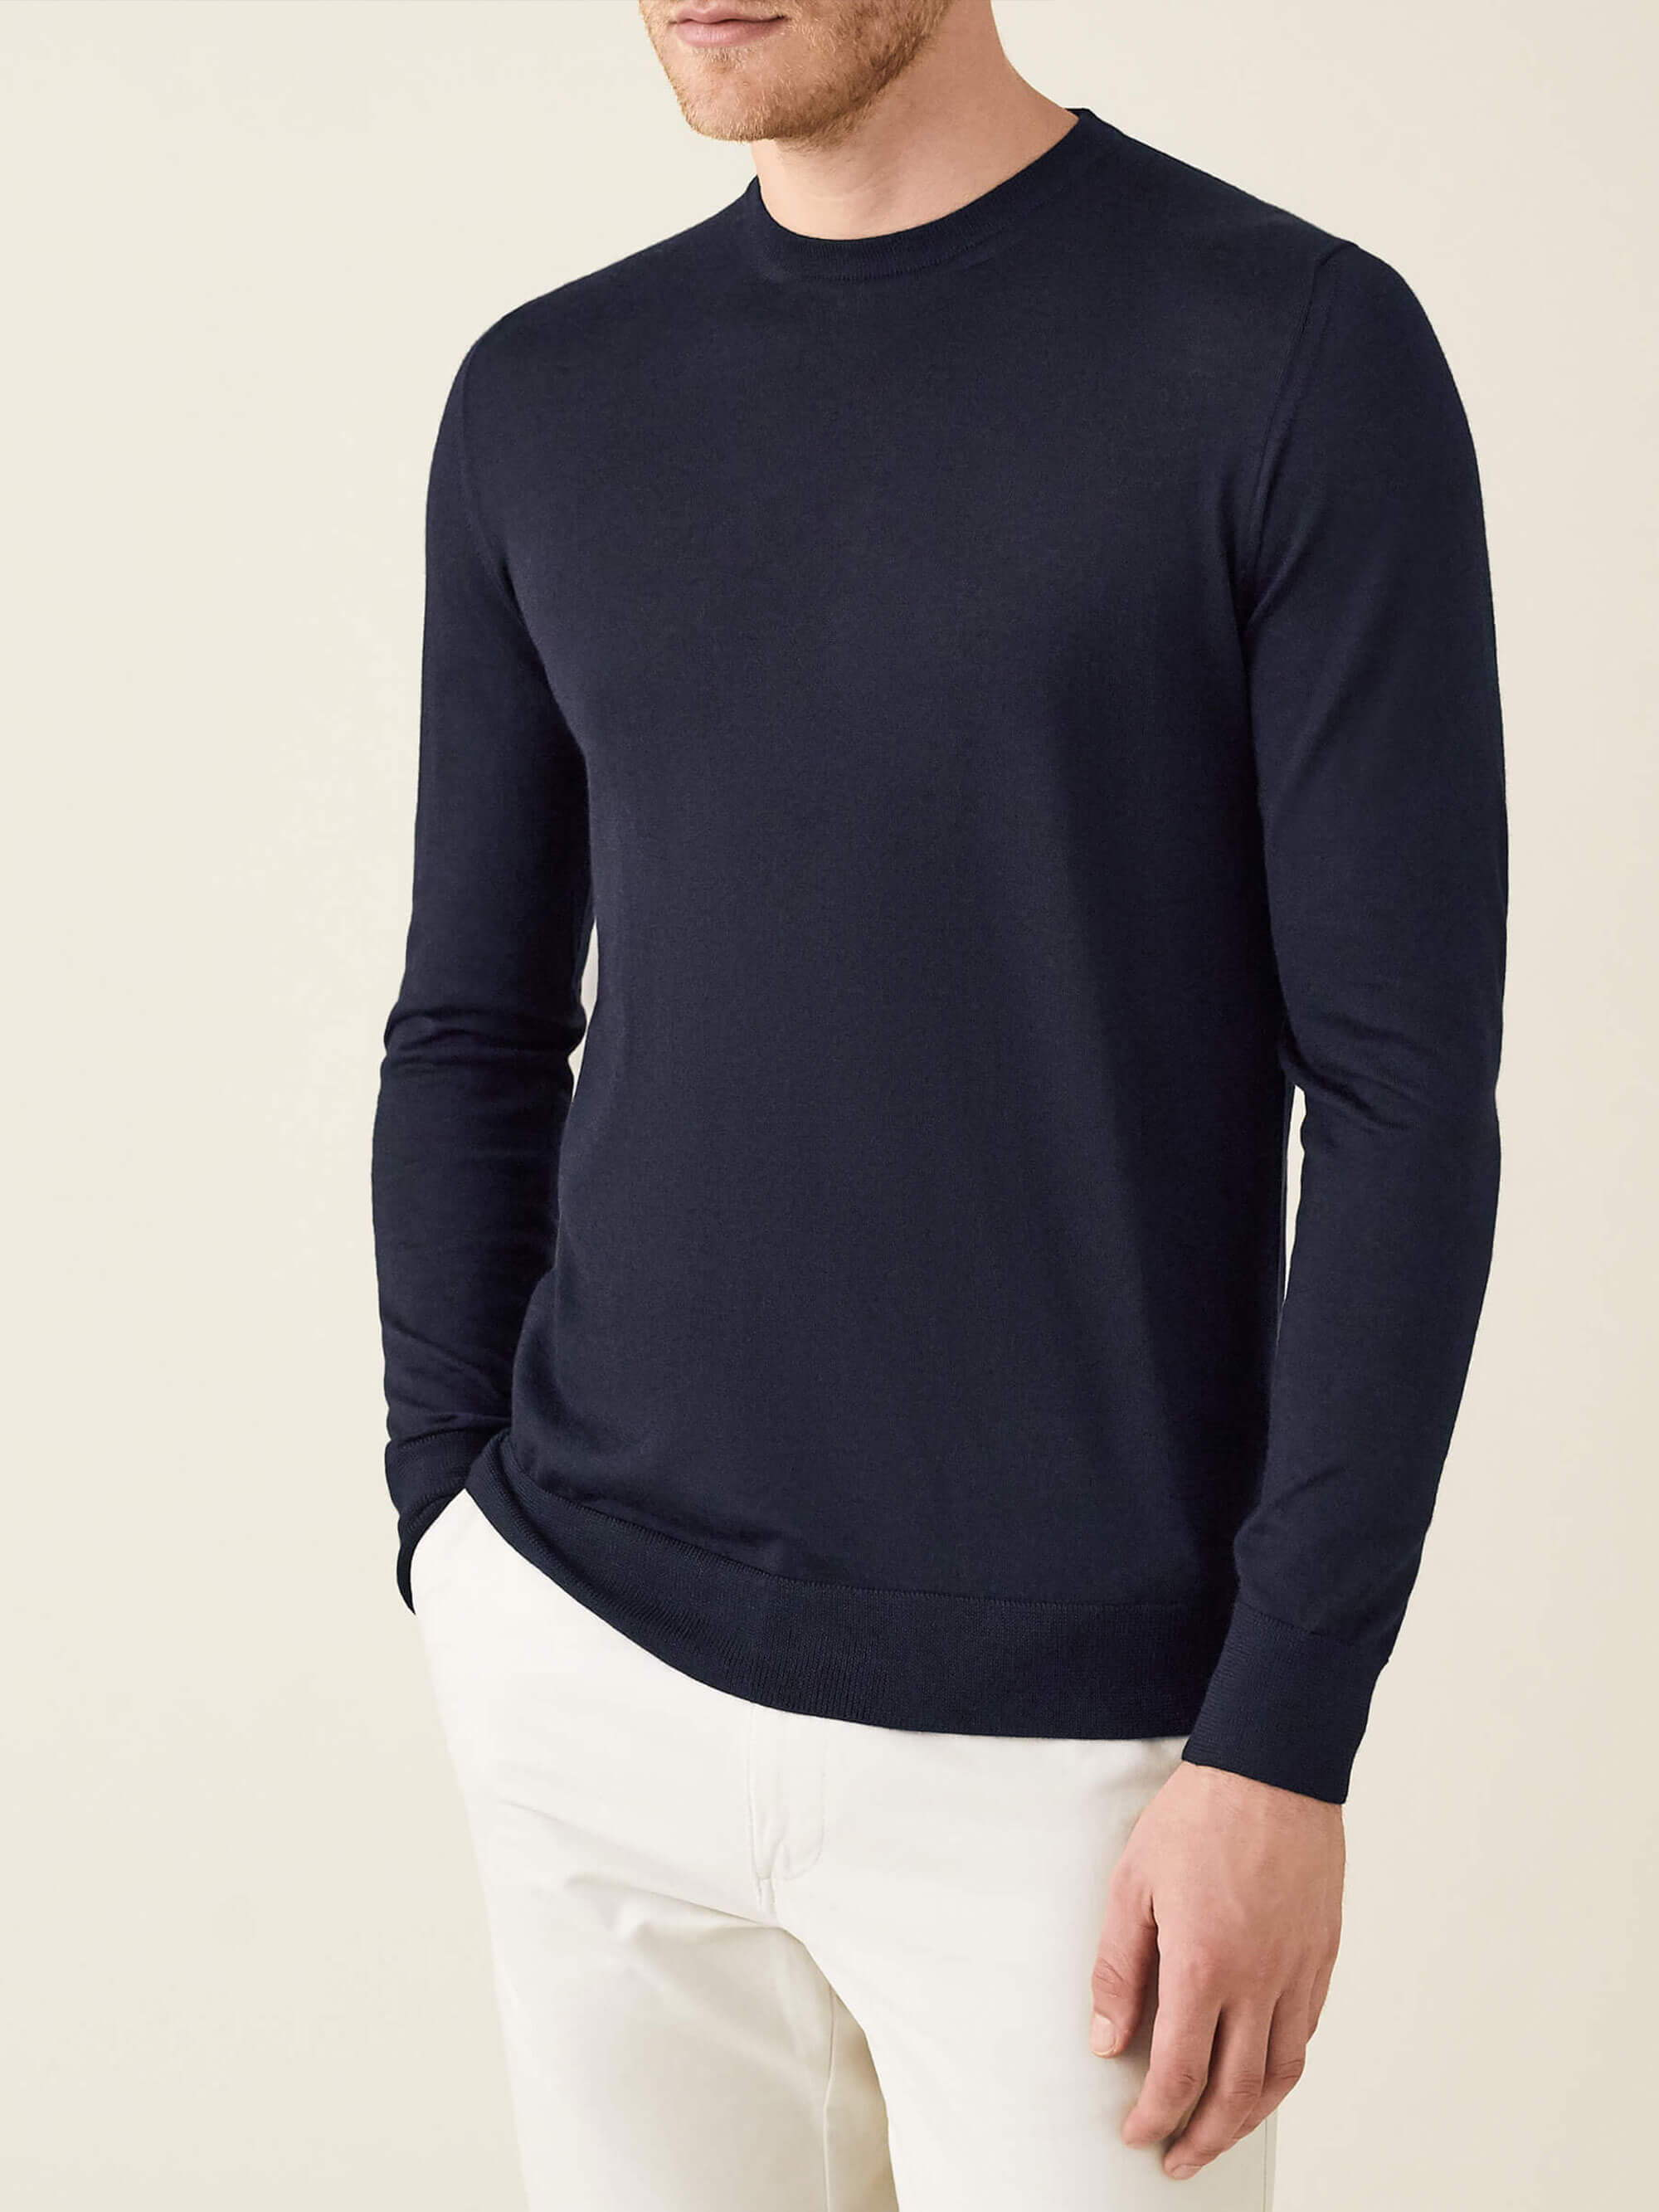 Navy Silk Cashmere Crew Neck